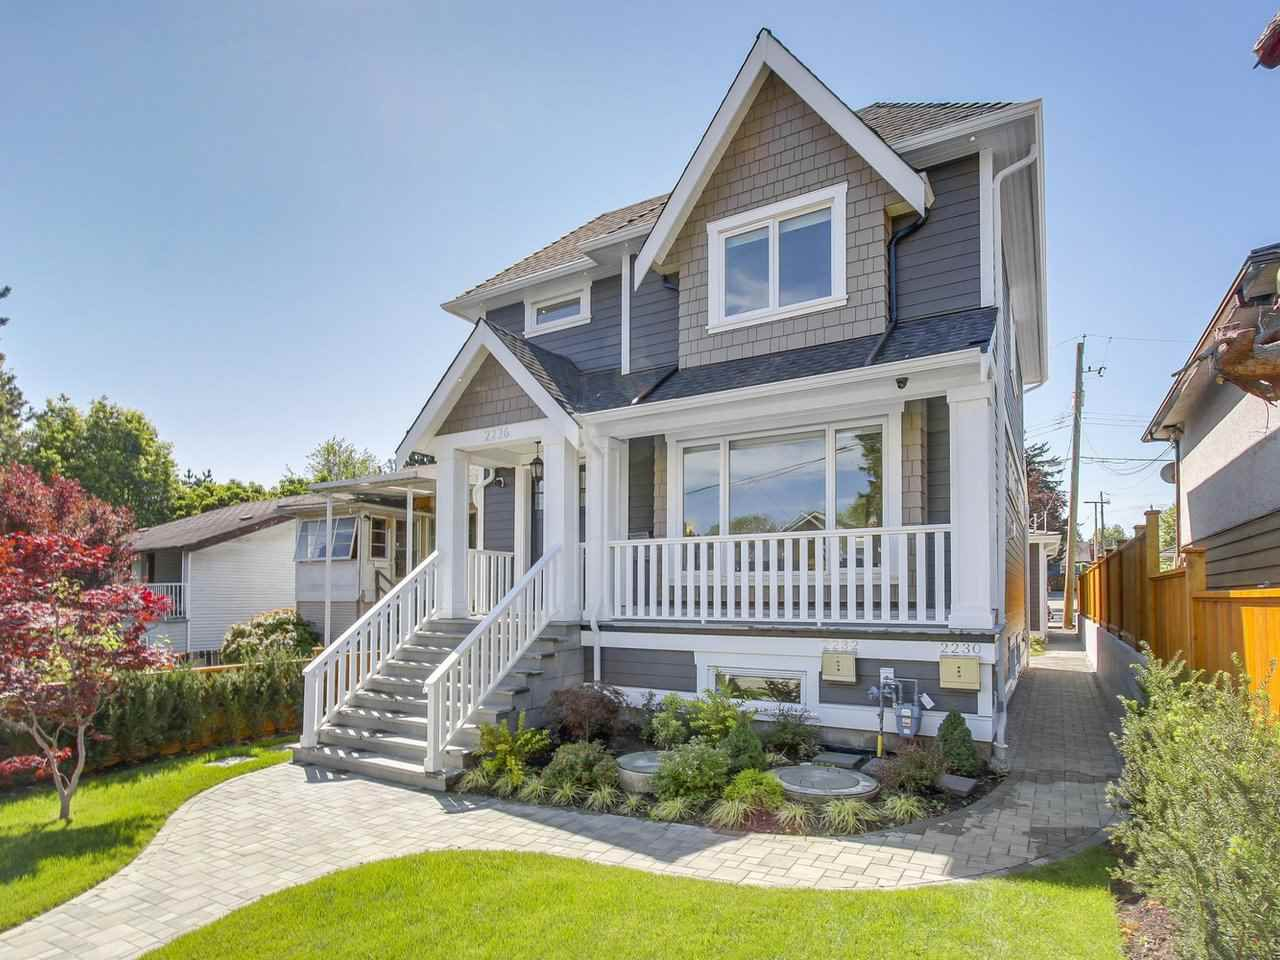 Main Photo: 2236 E 25TH Avenue in Vancouver: Victoria VE House for sale (Vancouver East)  : MLS®# R2191938